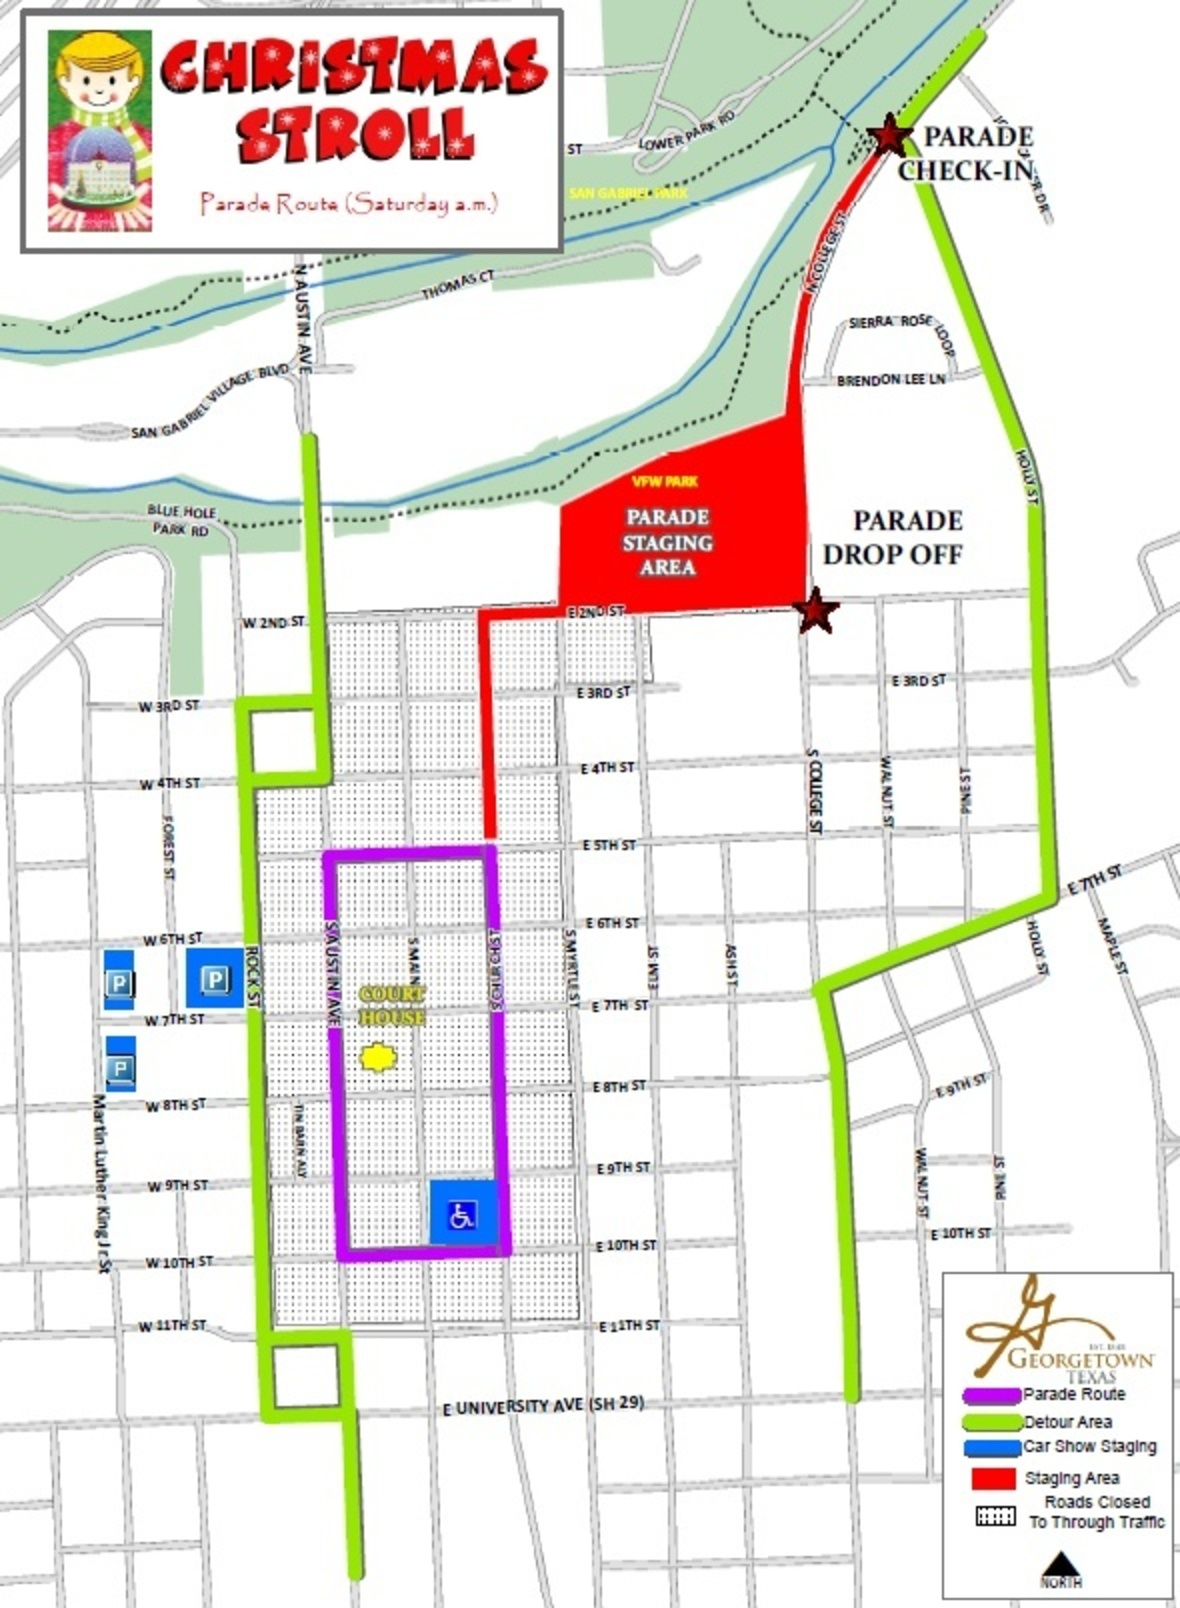 Click here for parade map